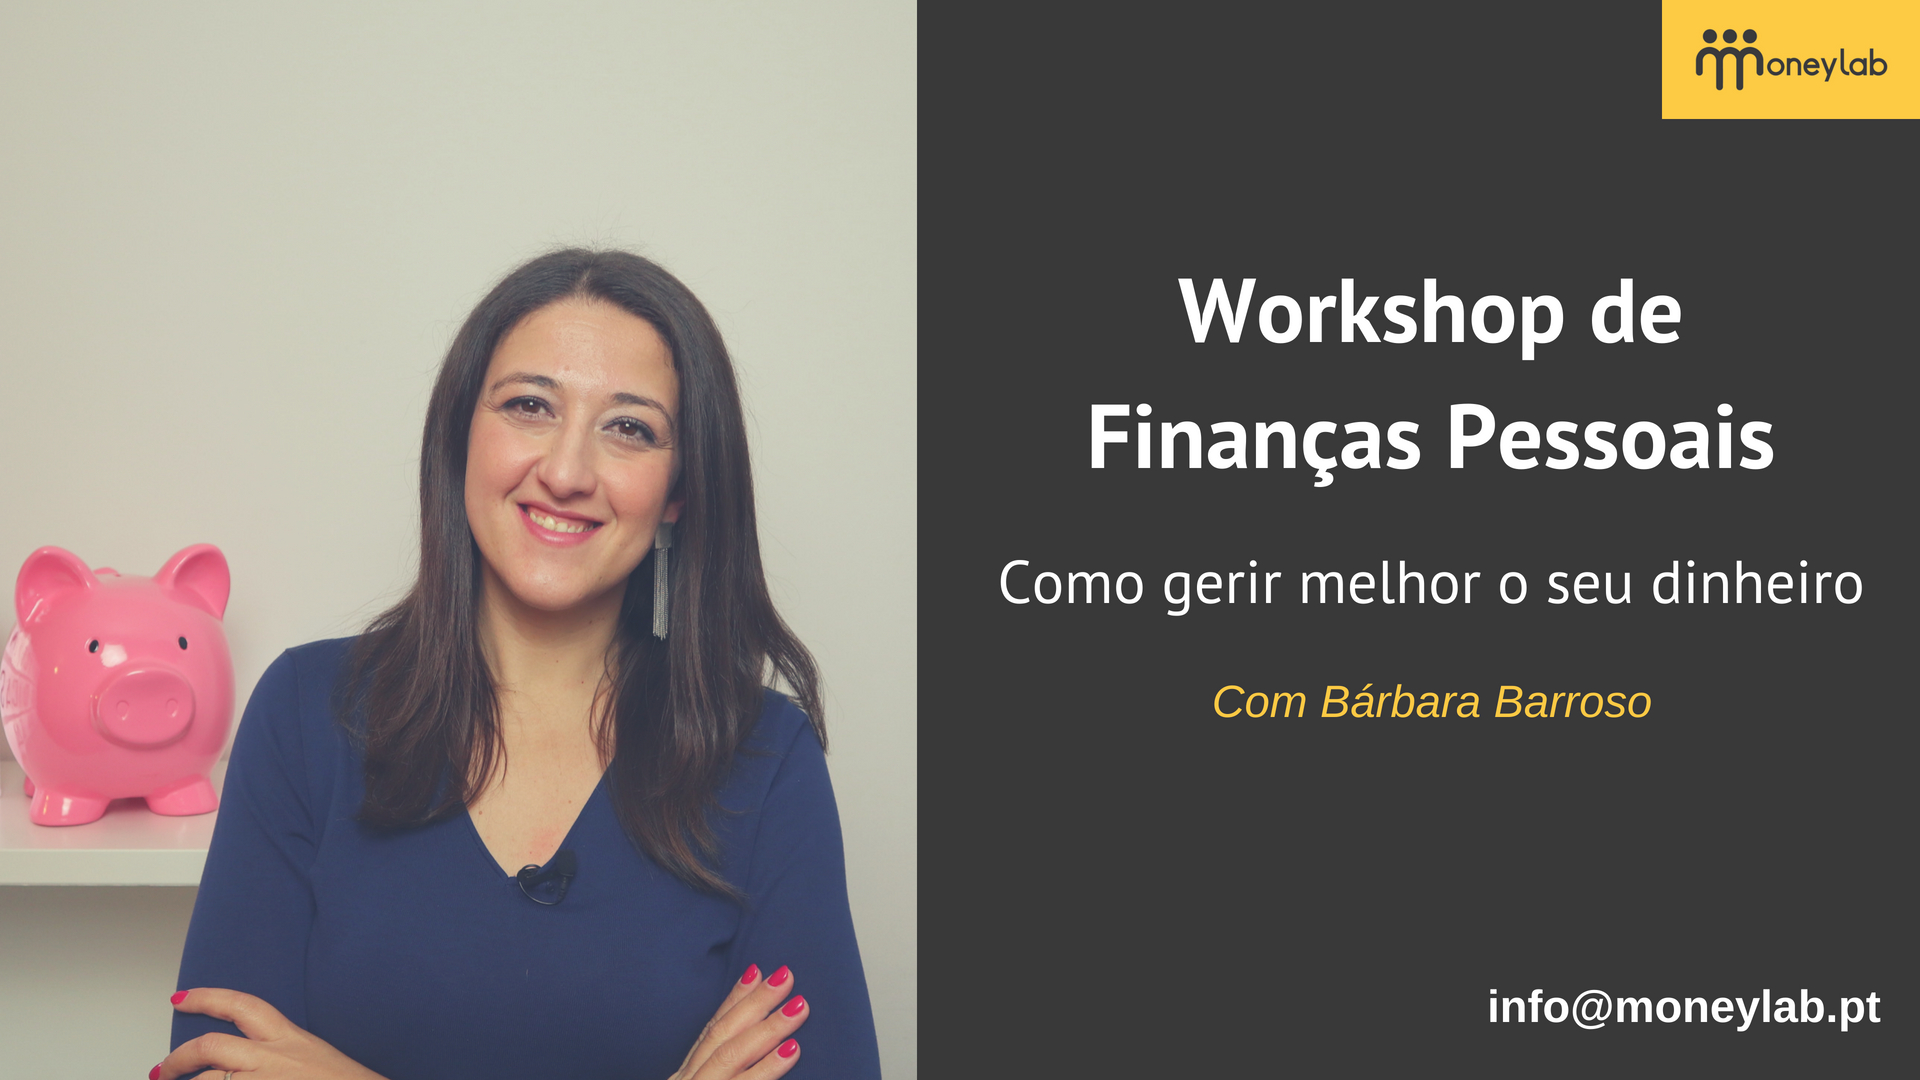 WorkshopFinancasPessoais_MoneyLab_BarbaraBarroso